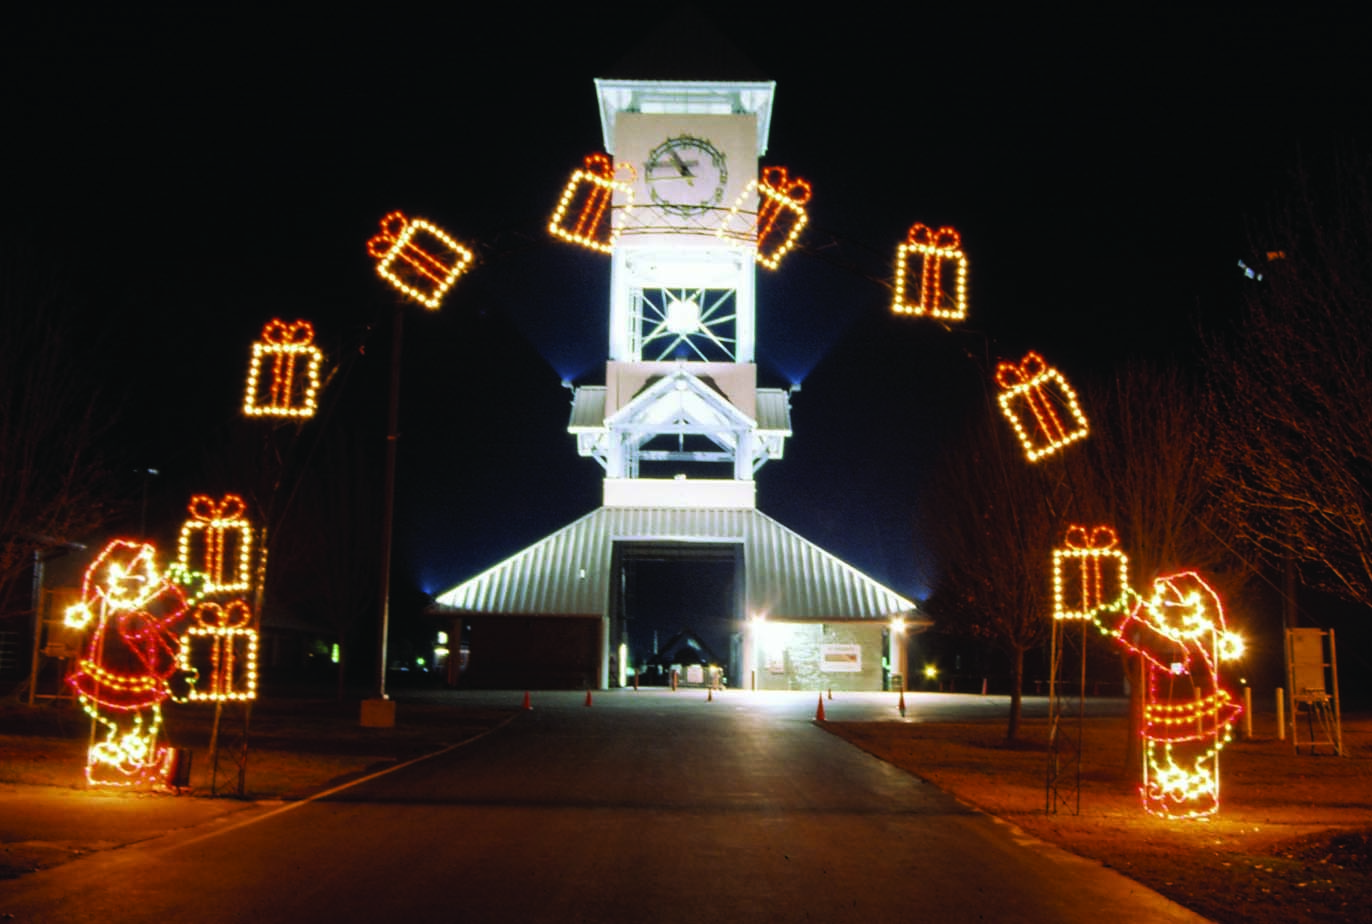 Commercial lighted arches for drive thru parks and city